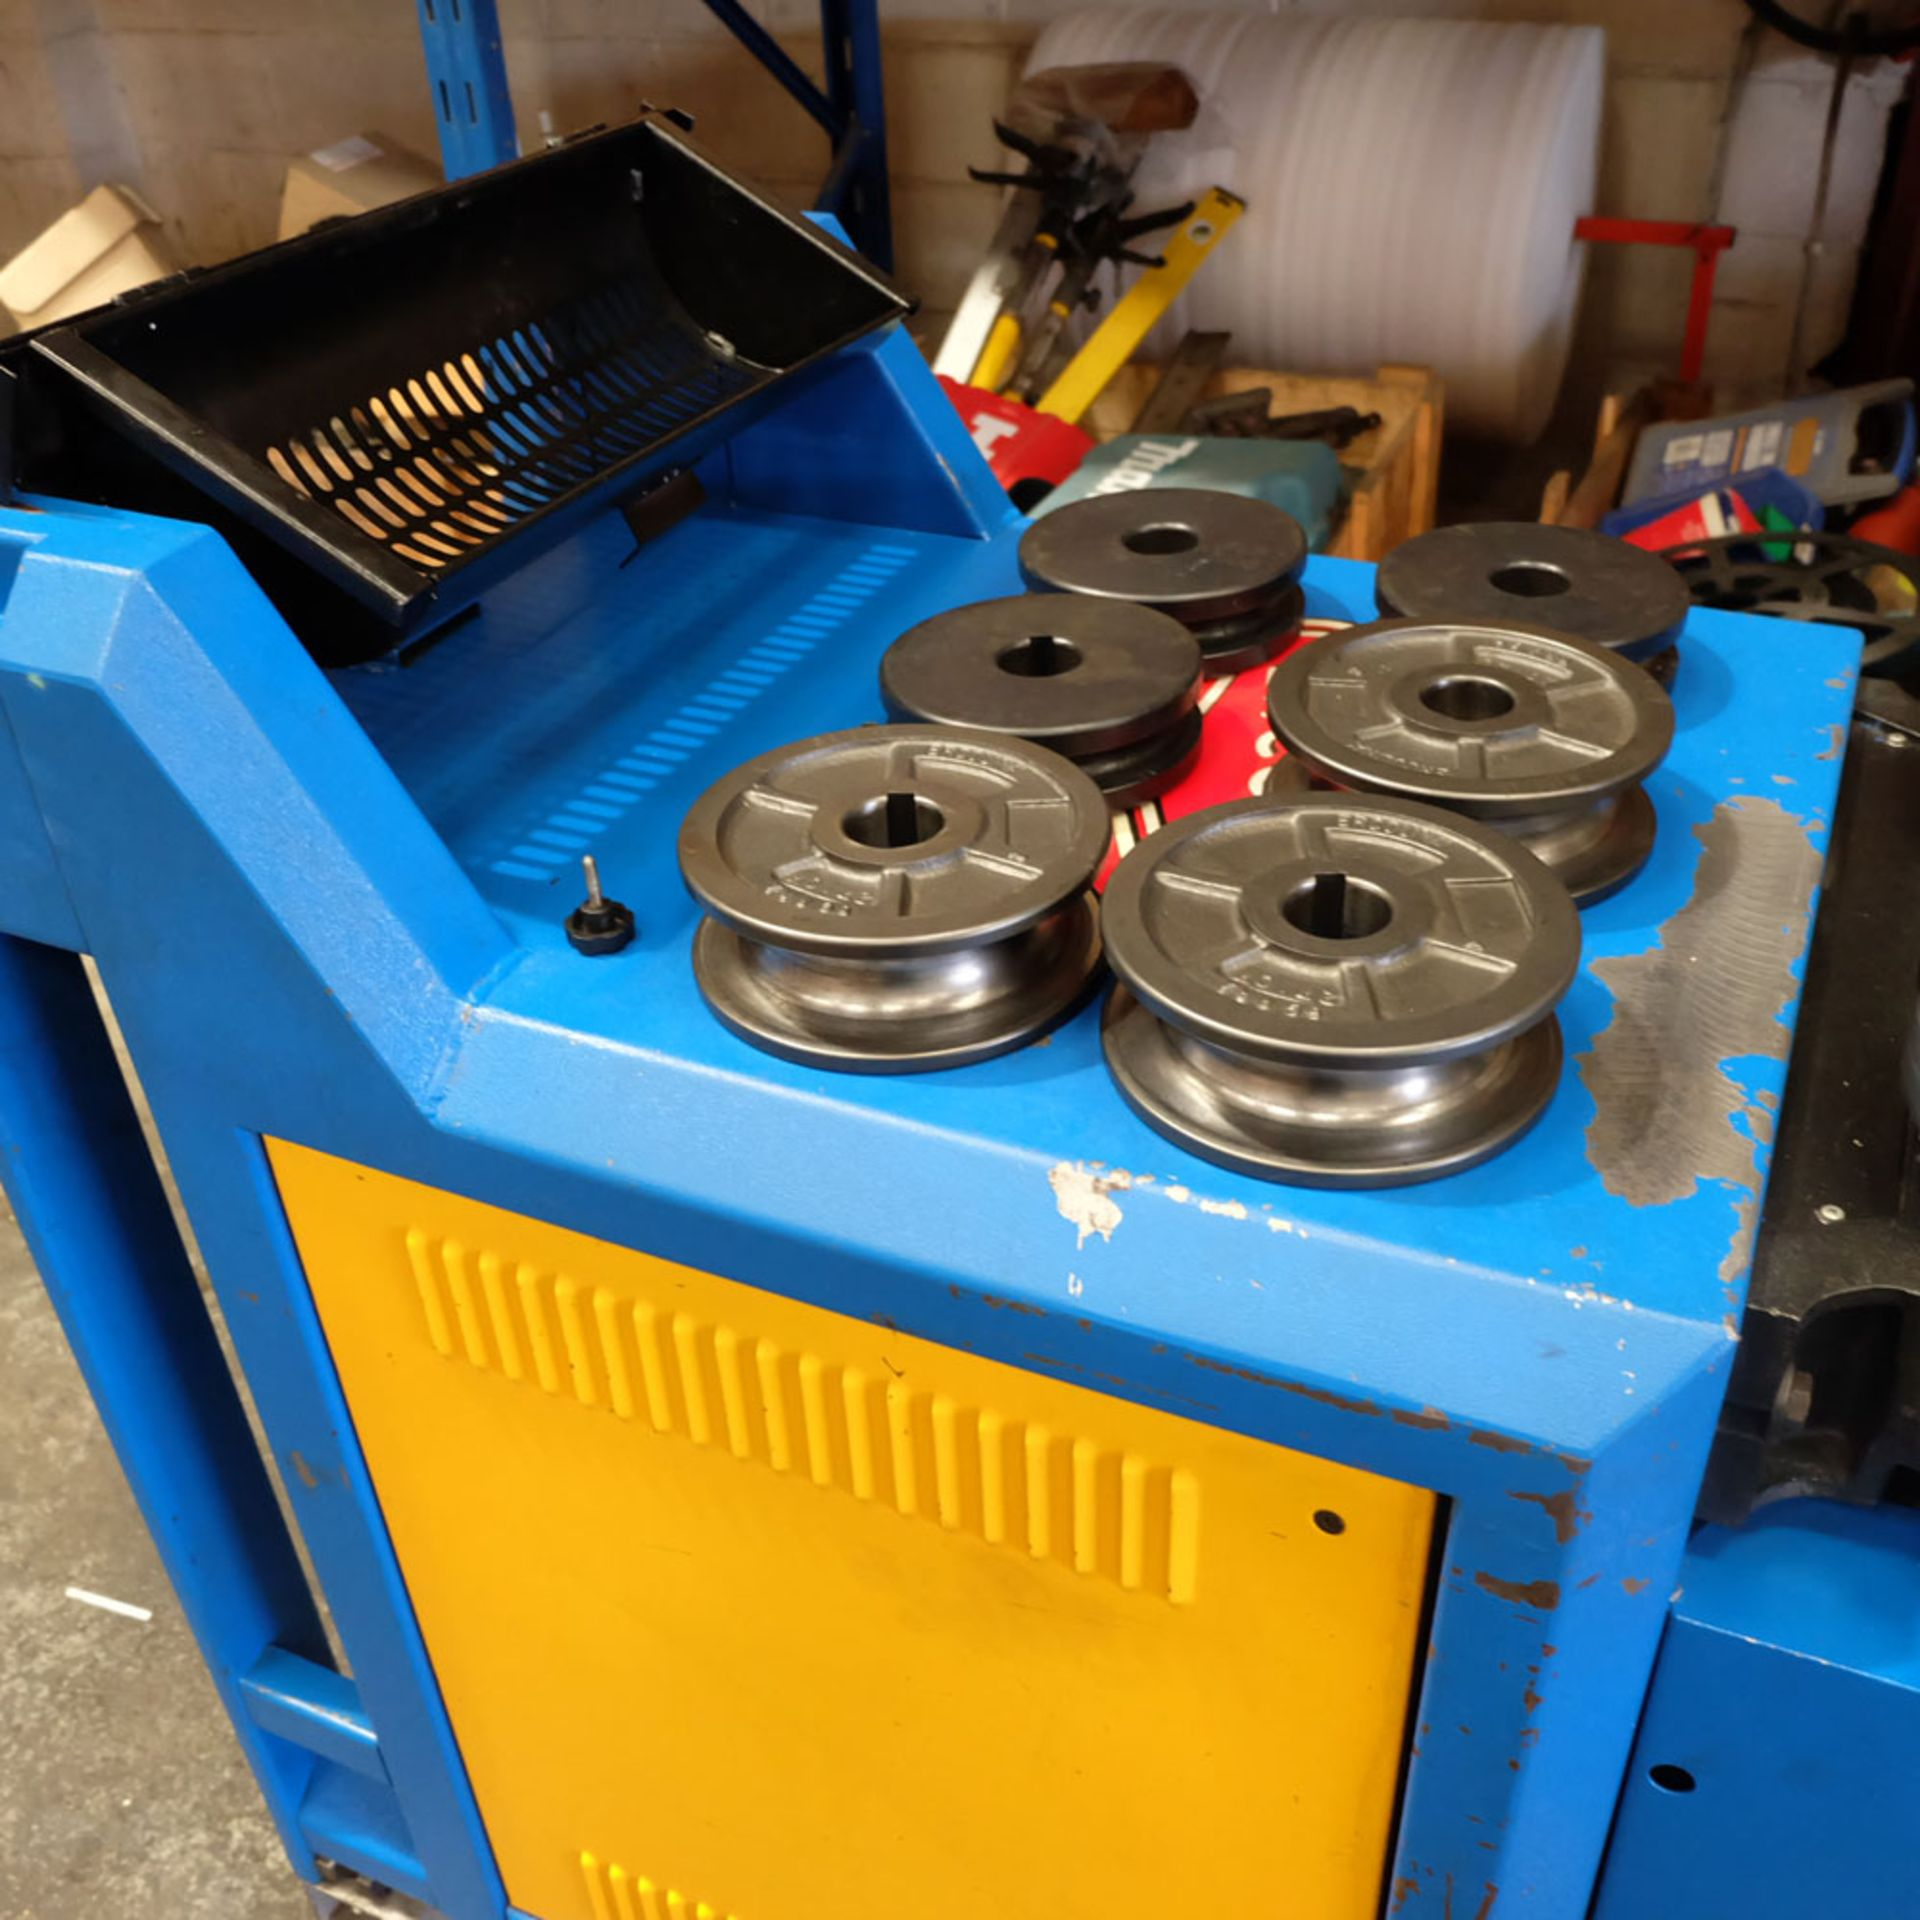 Ercolina CE40MR3 - Ring rollers. Horizontal/Vertical. Roll Shaft Diameter 40mm. - Image 13 of 14